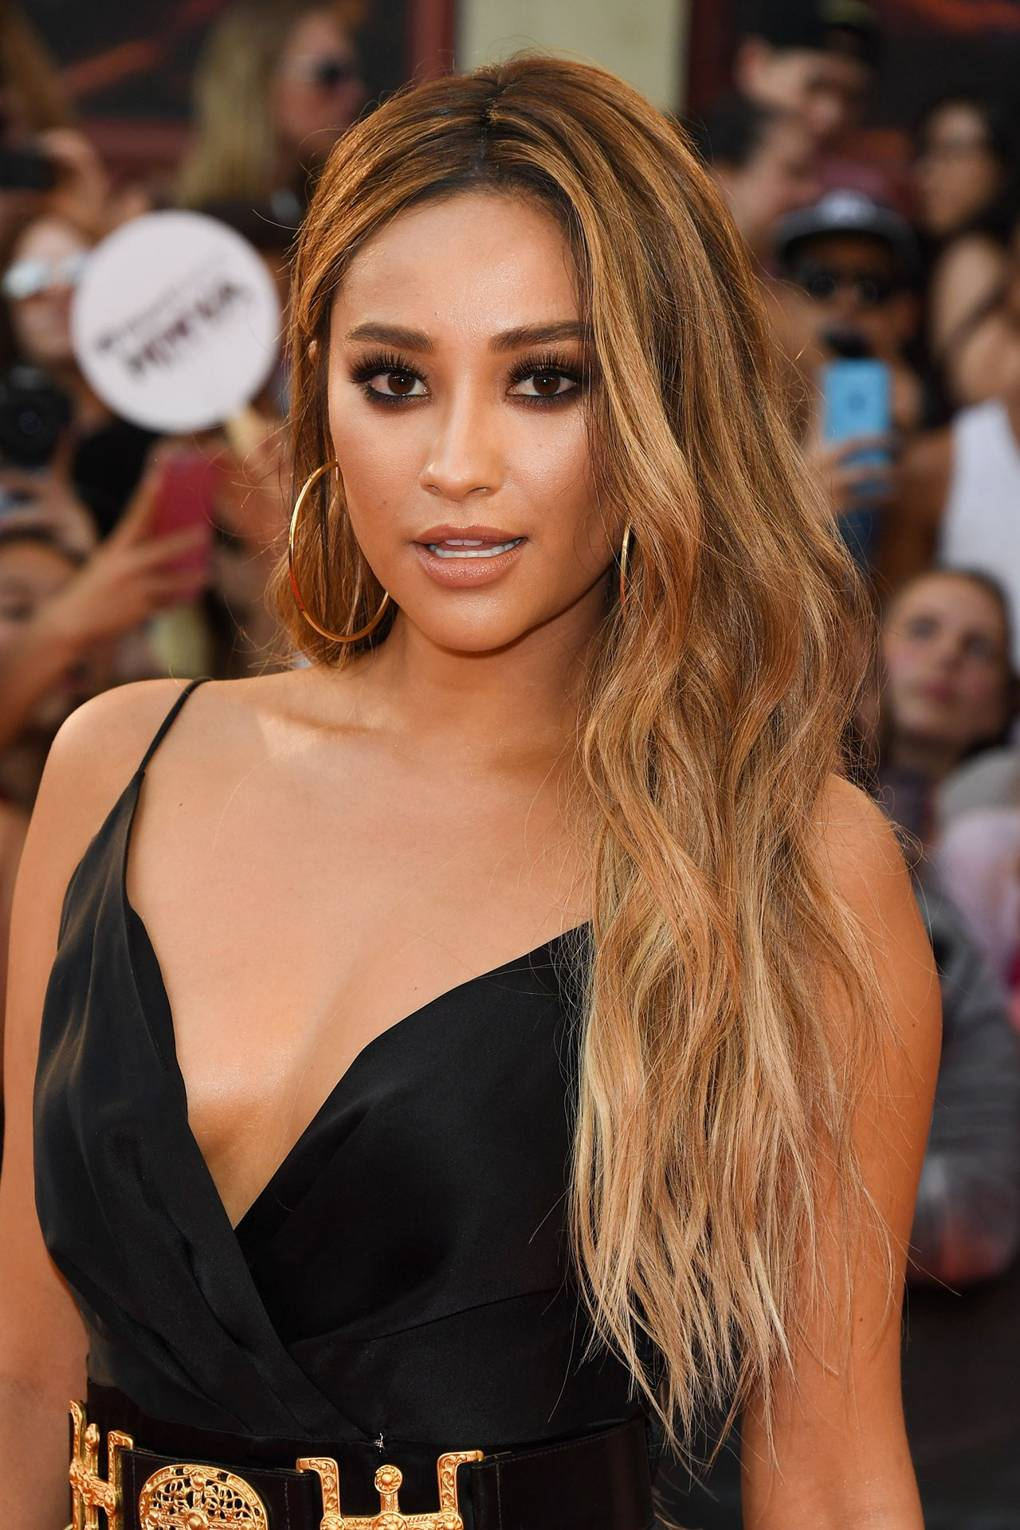 Shay Mitchell hair, makeup & beauty - best hairstyles | Glamour UK